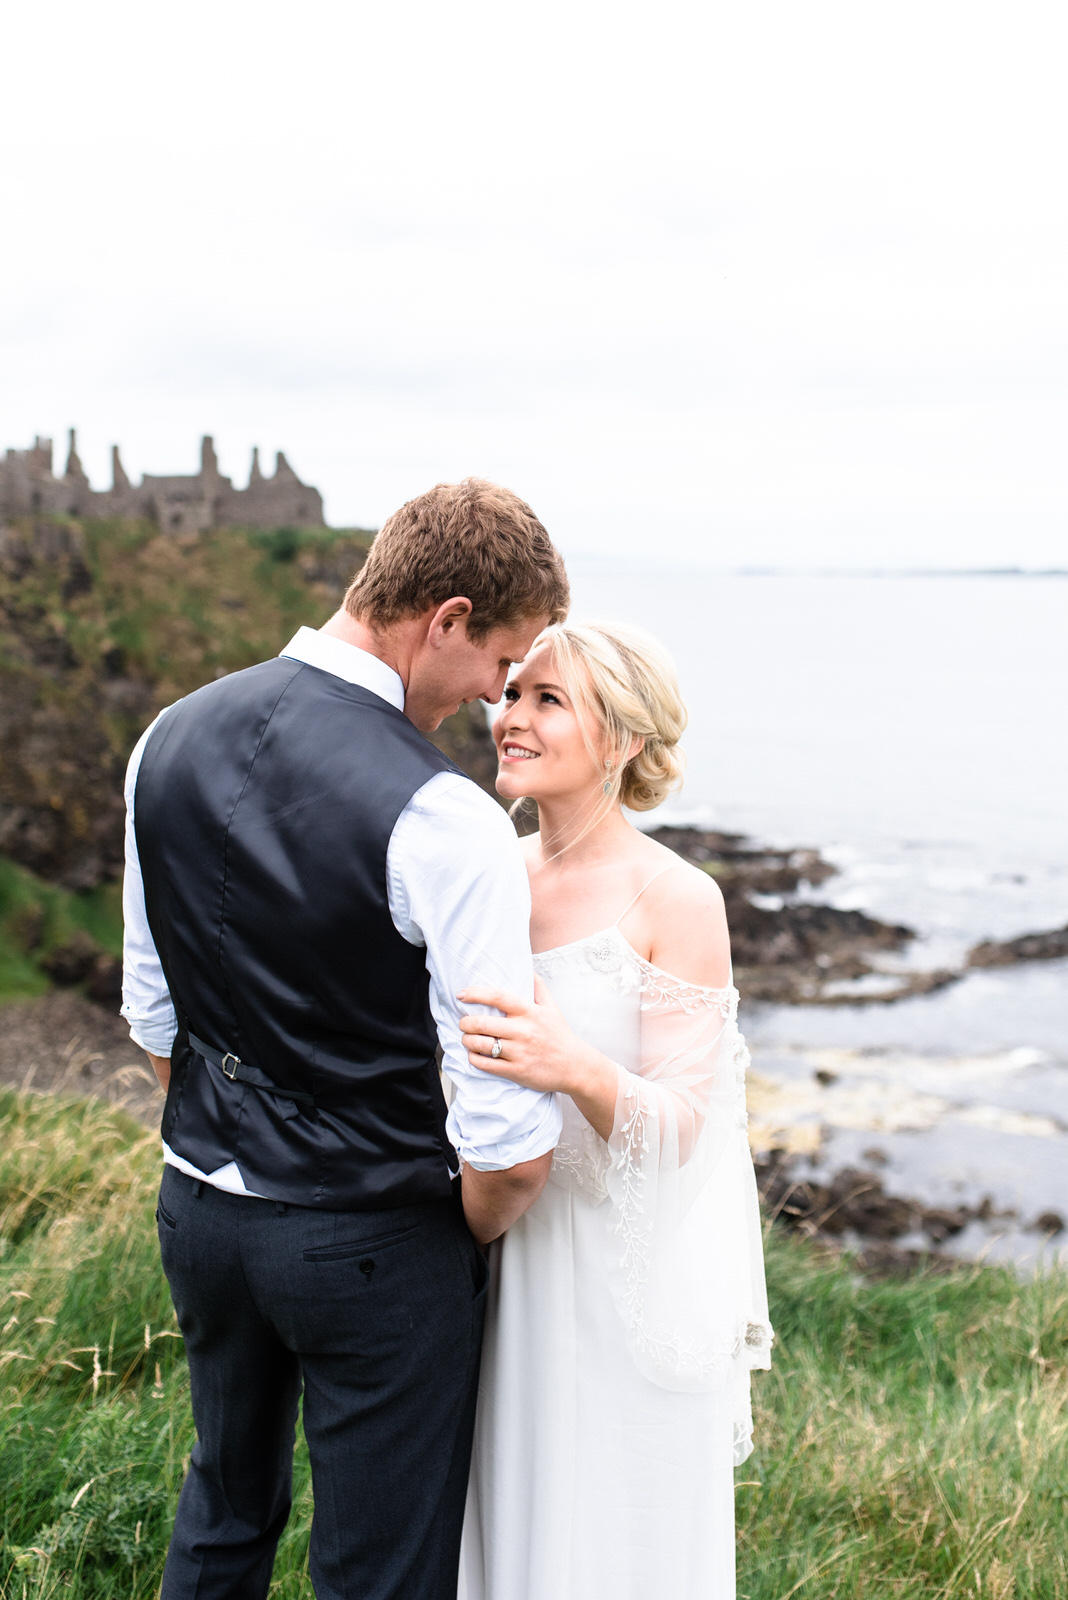 fine art dunluce castle elopement in ireland in sage and white, vows reading on the cliff of northern ireland, bo and luca wedding dress, couple hugging on the cliff-1.jpg